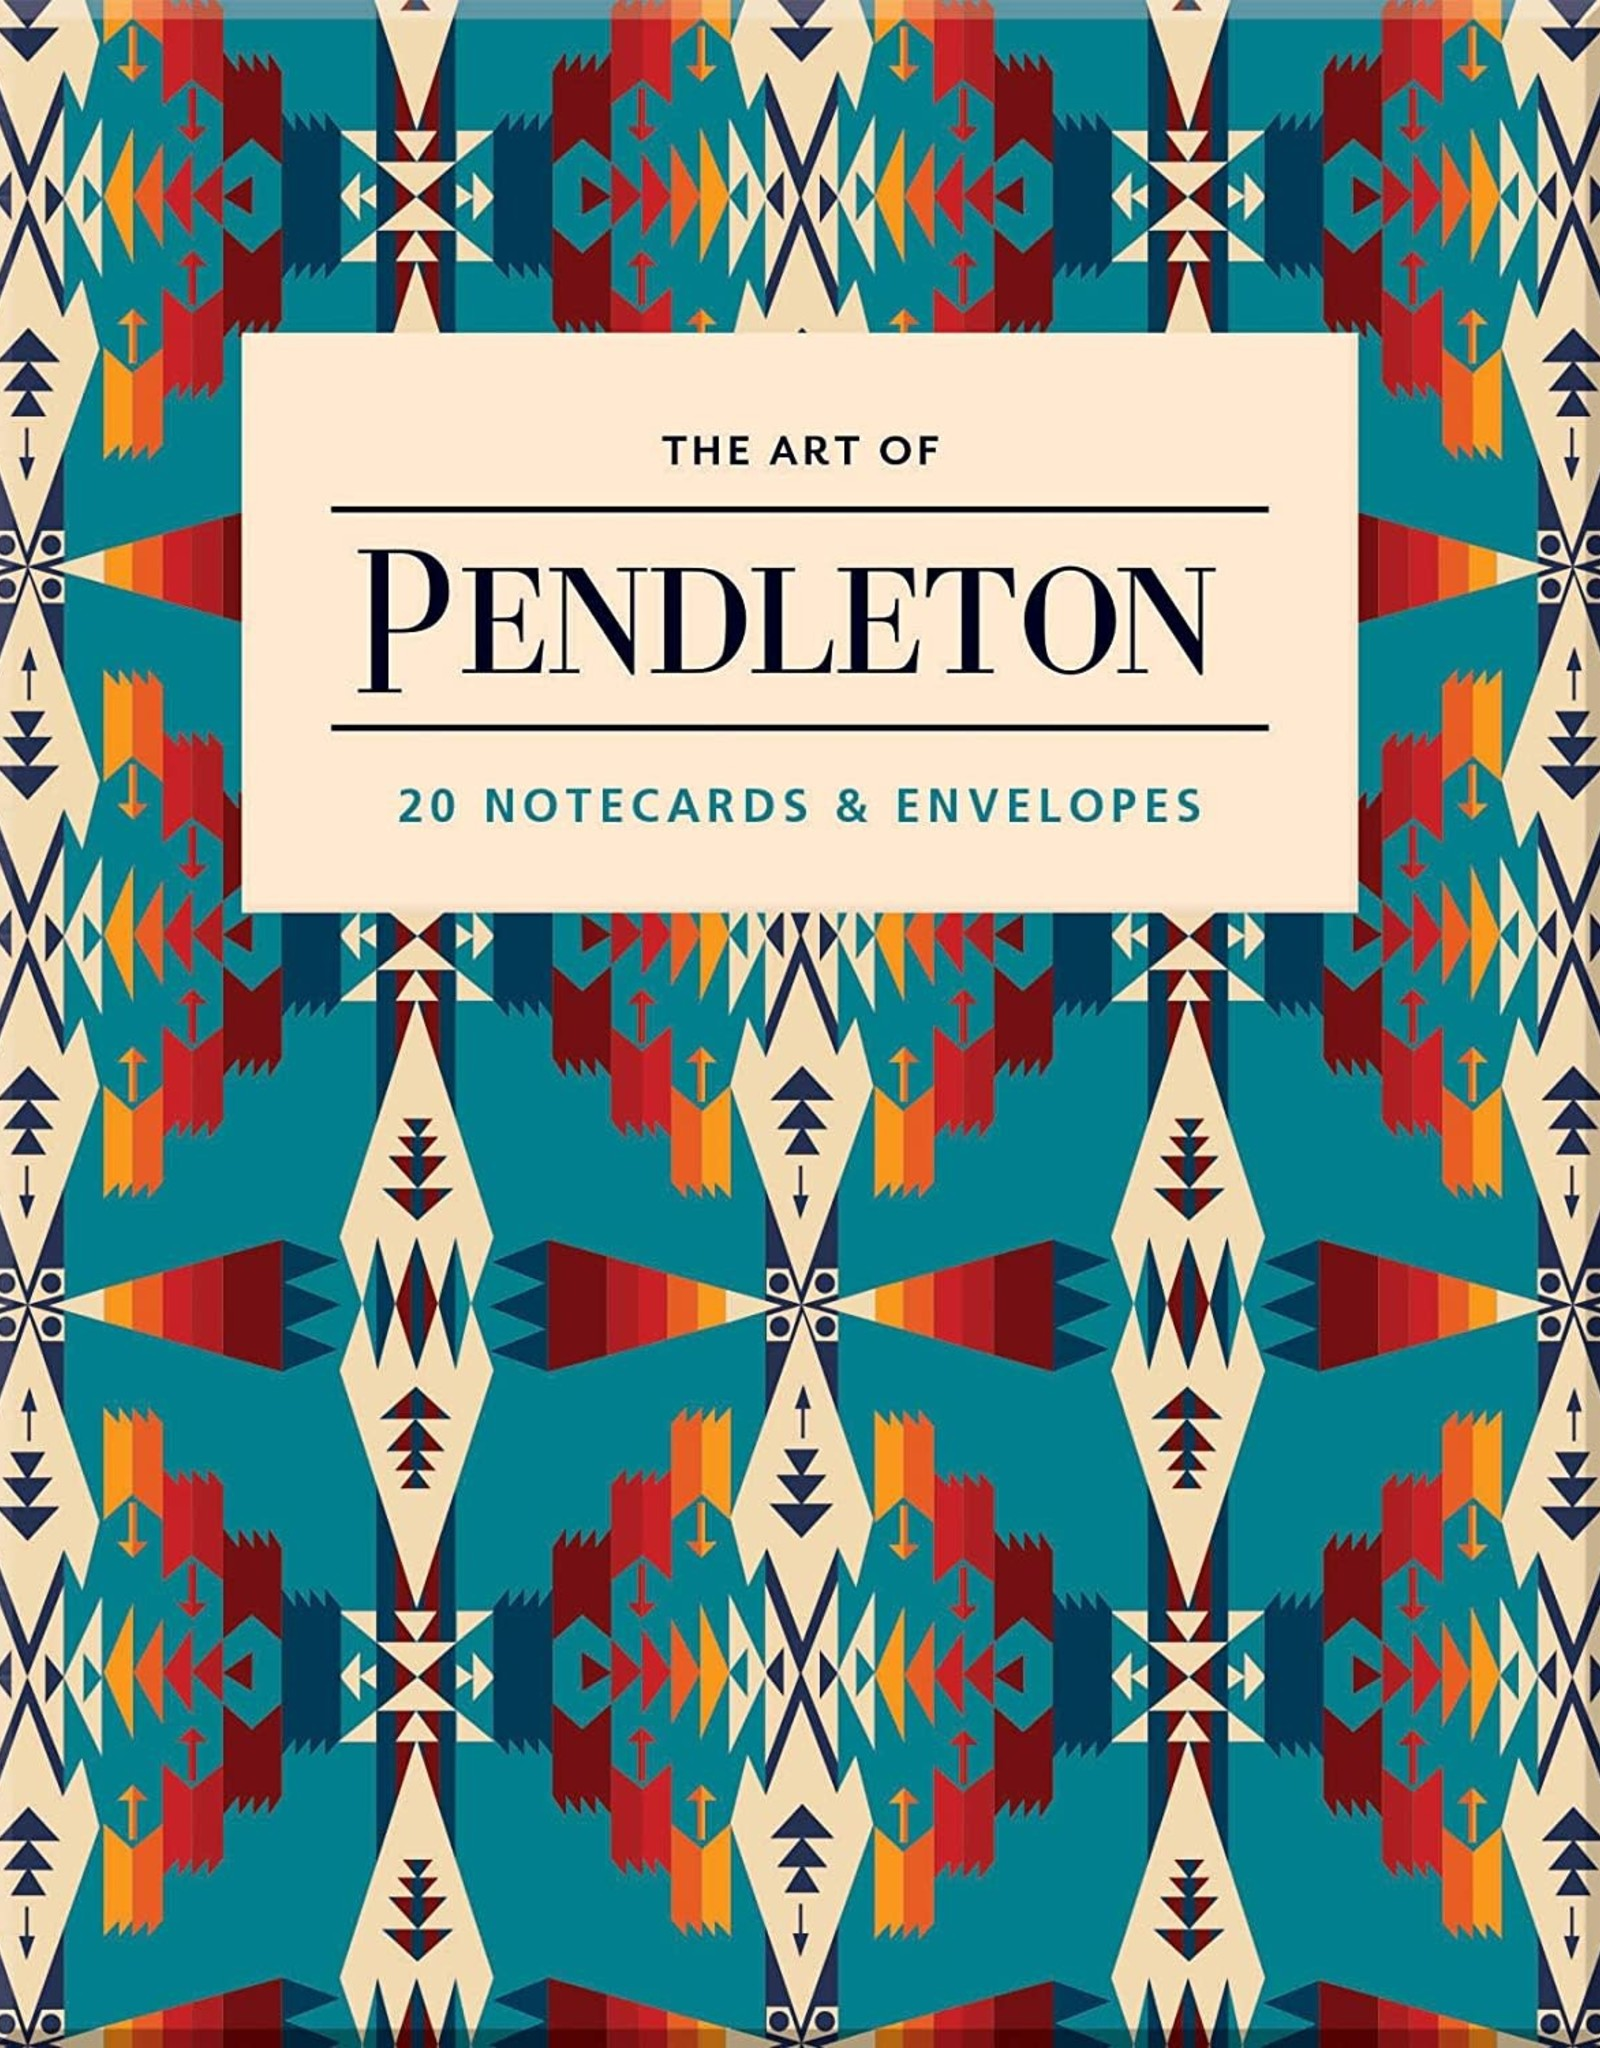 The Art Of Pendleton Notes